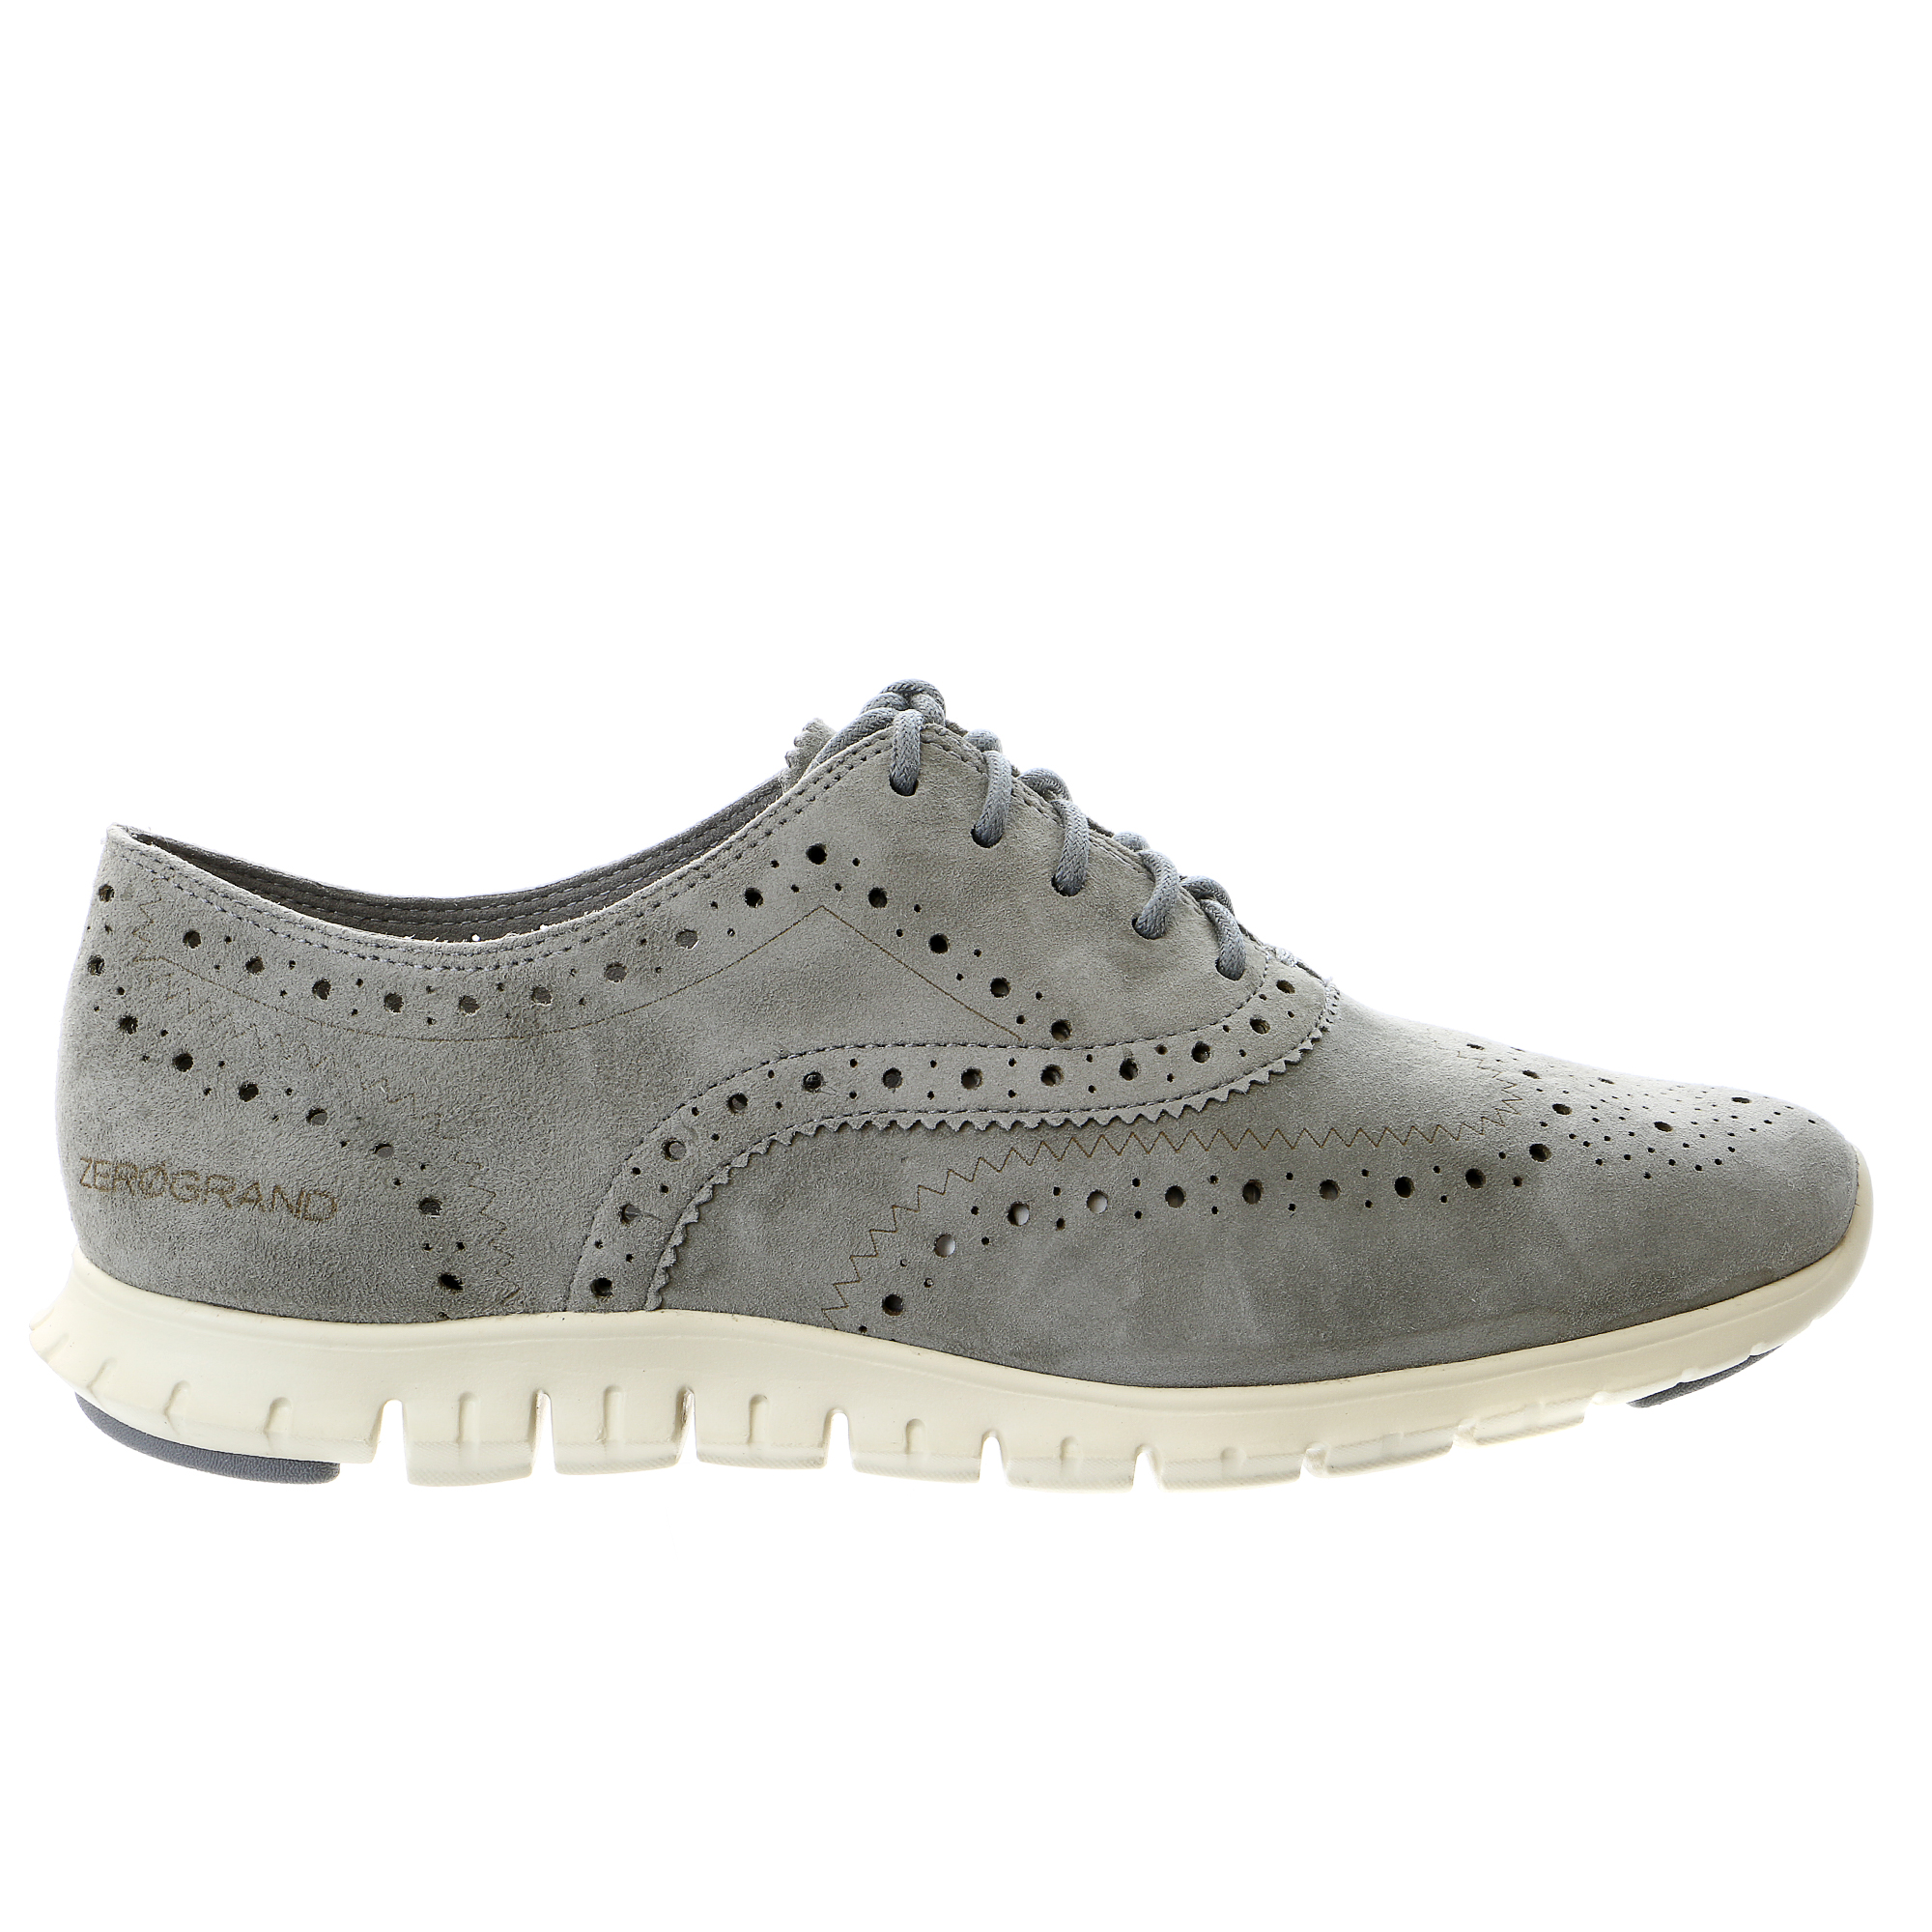 Cole Haan Zerogrand Wing Oxford Casual Fashion Sneaker Shoe - Womens -  Walmart.com